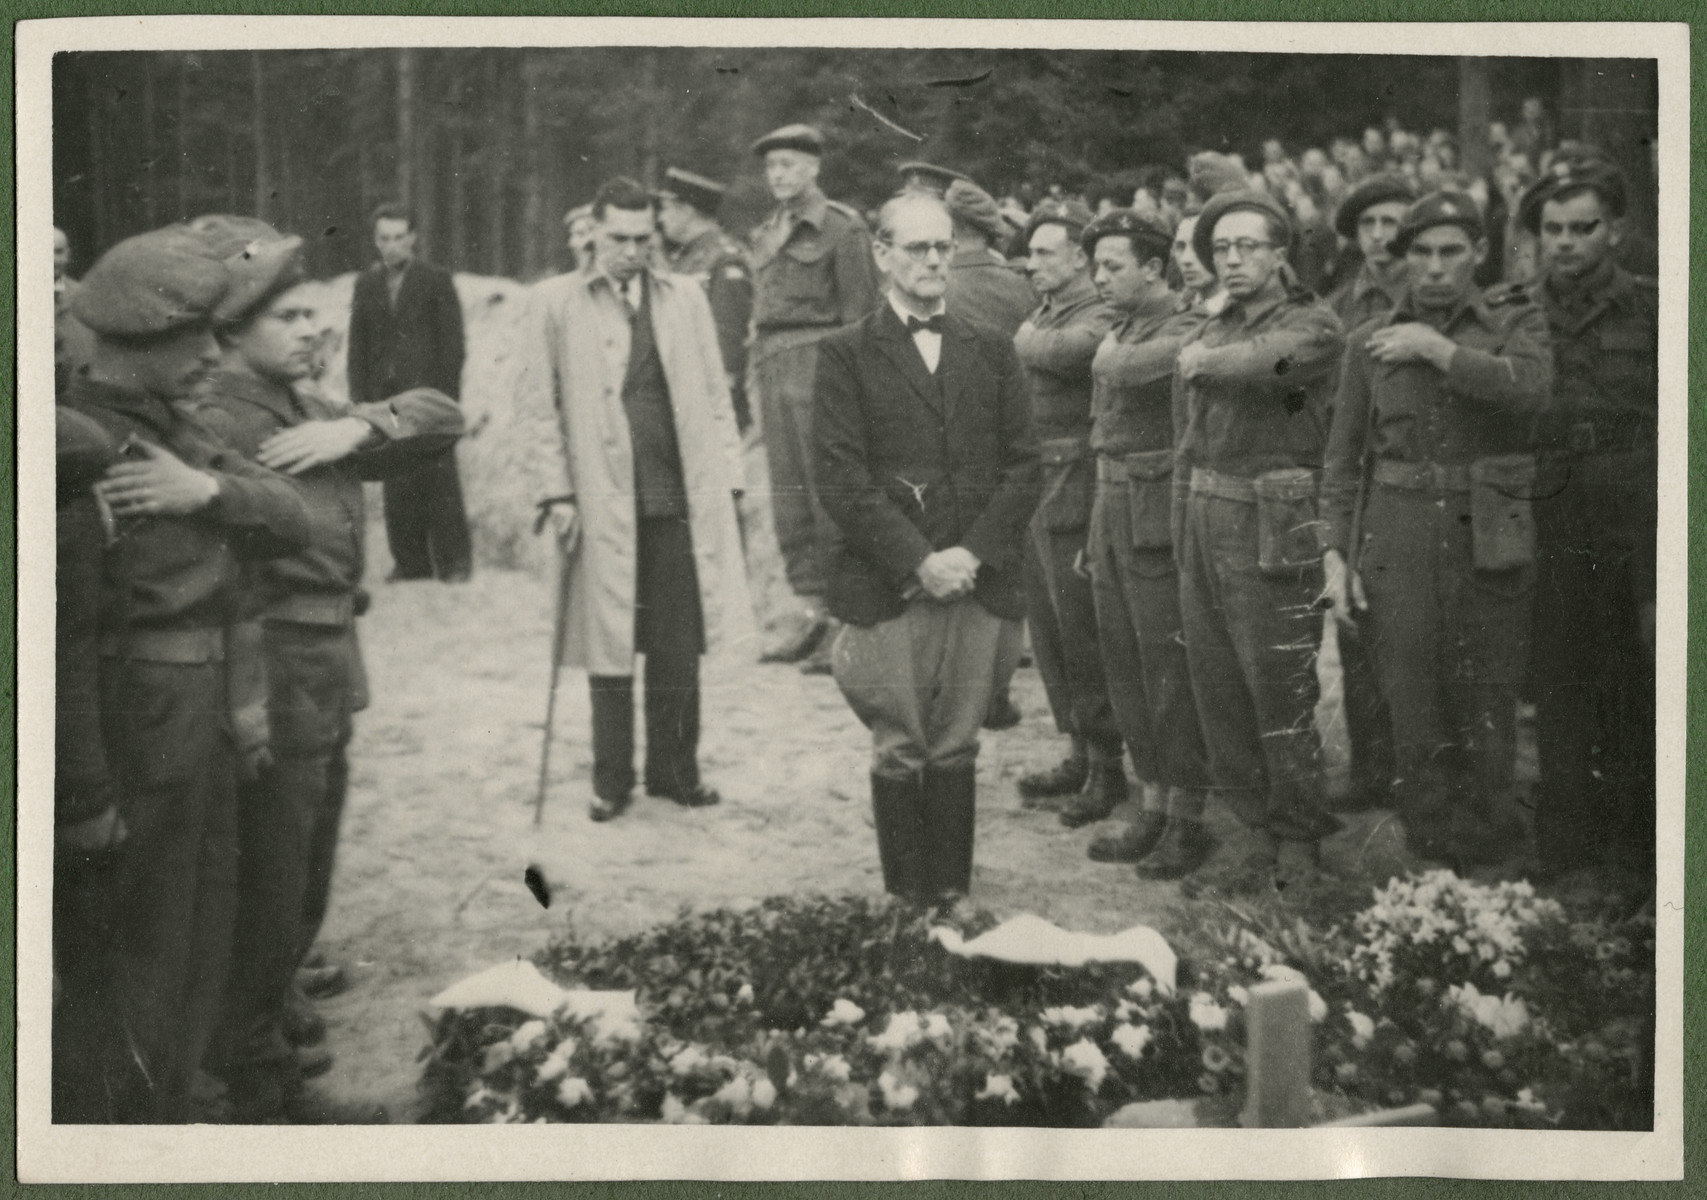 Belgian soldiers and the major of Lueneburg pay their final respects to the 243 slave laborers who were shot by their guards on the railway lines at Lueneburg on the way to the Belsen Camp.